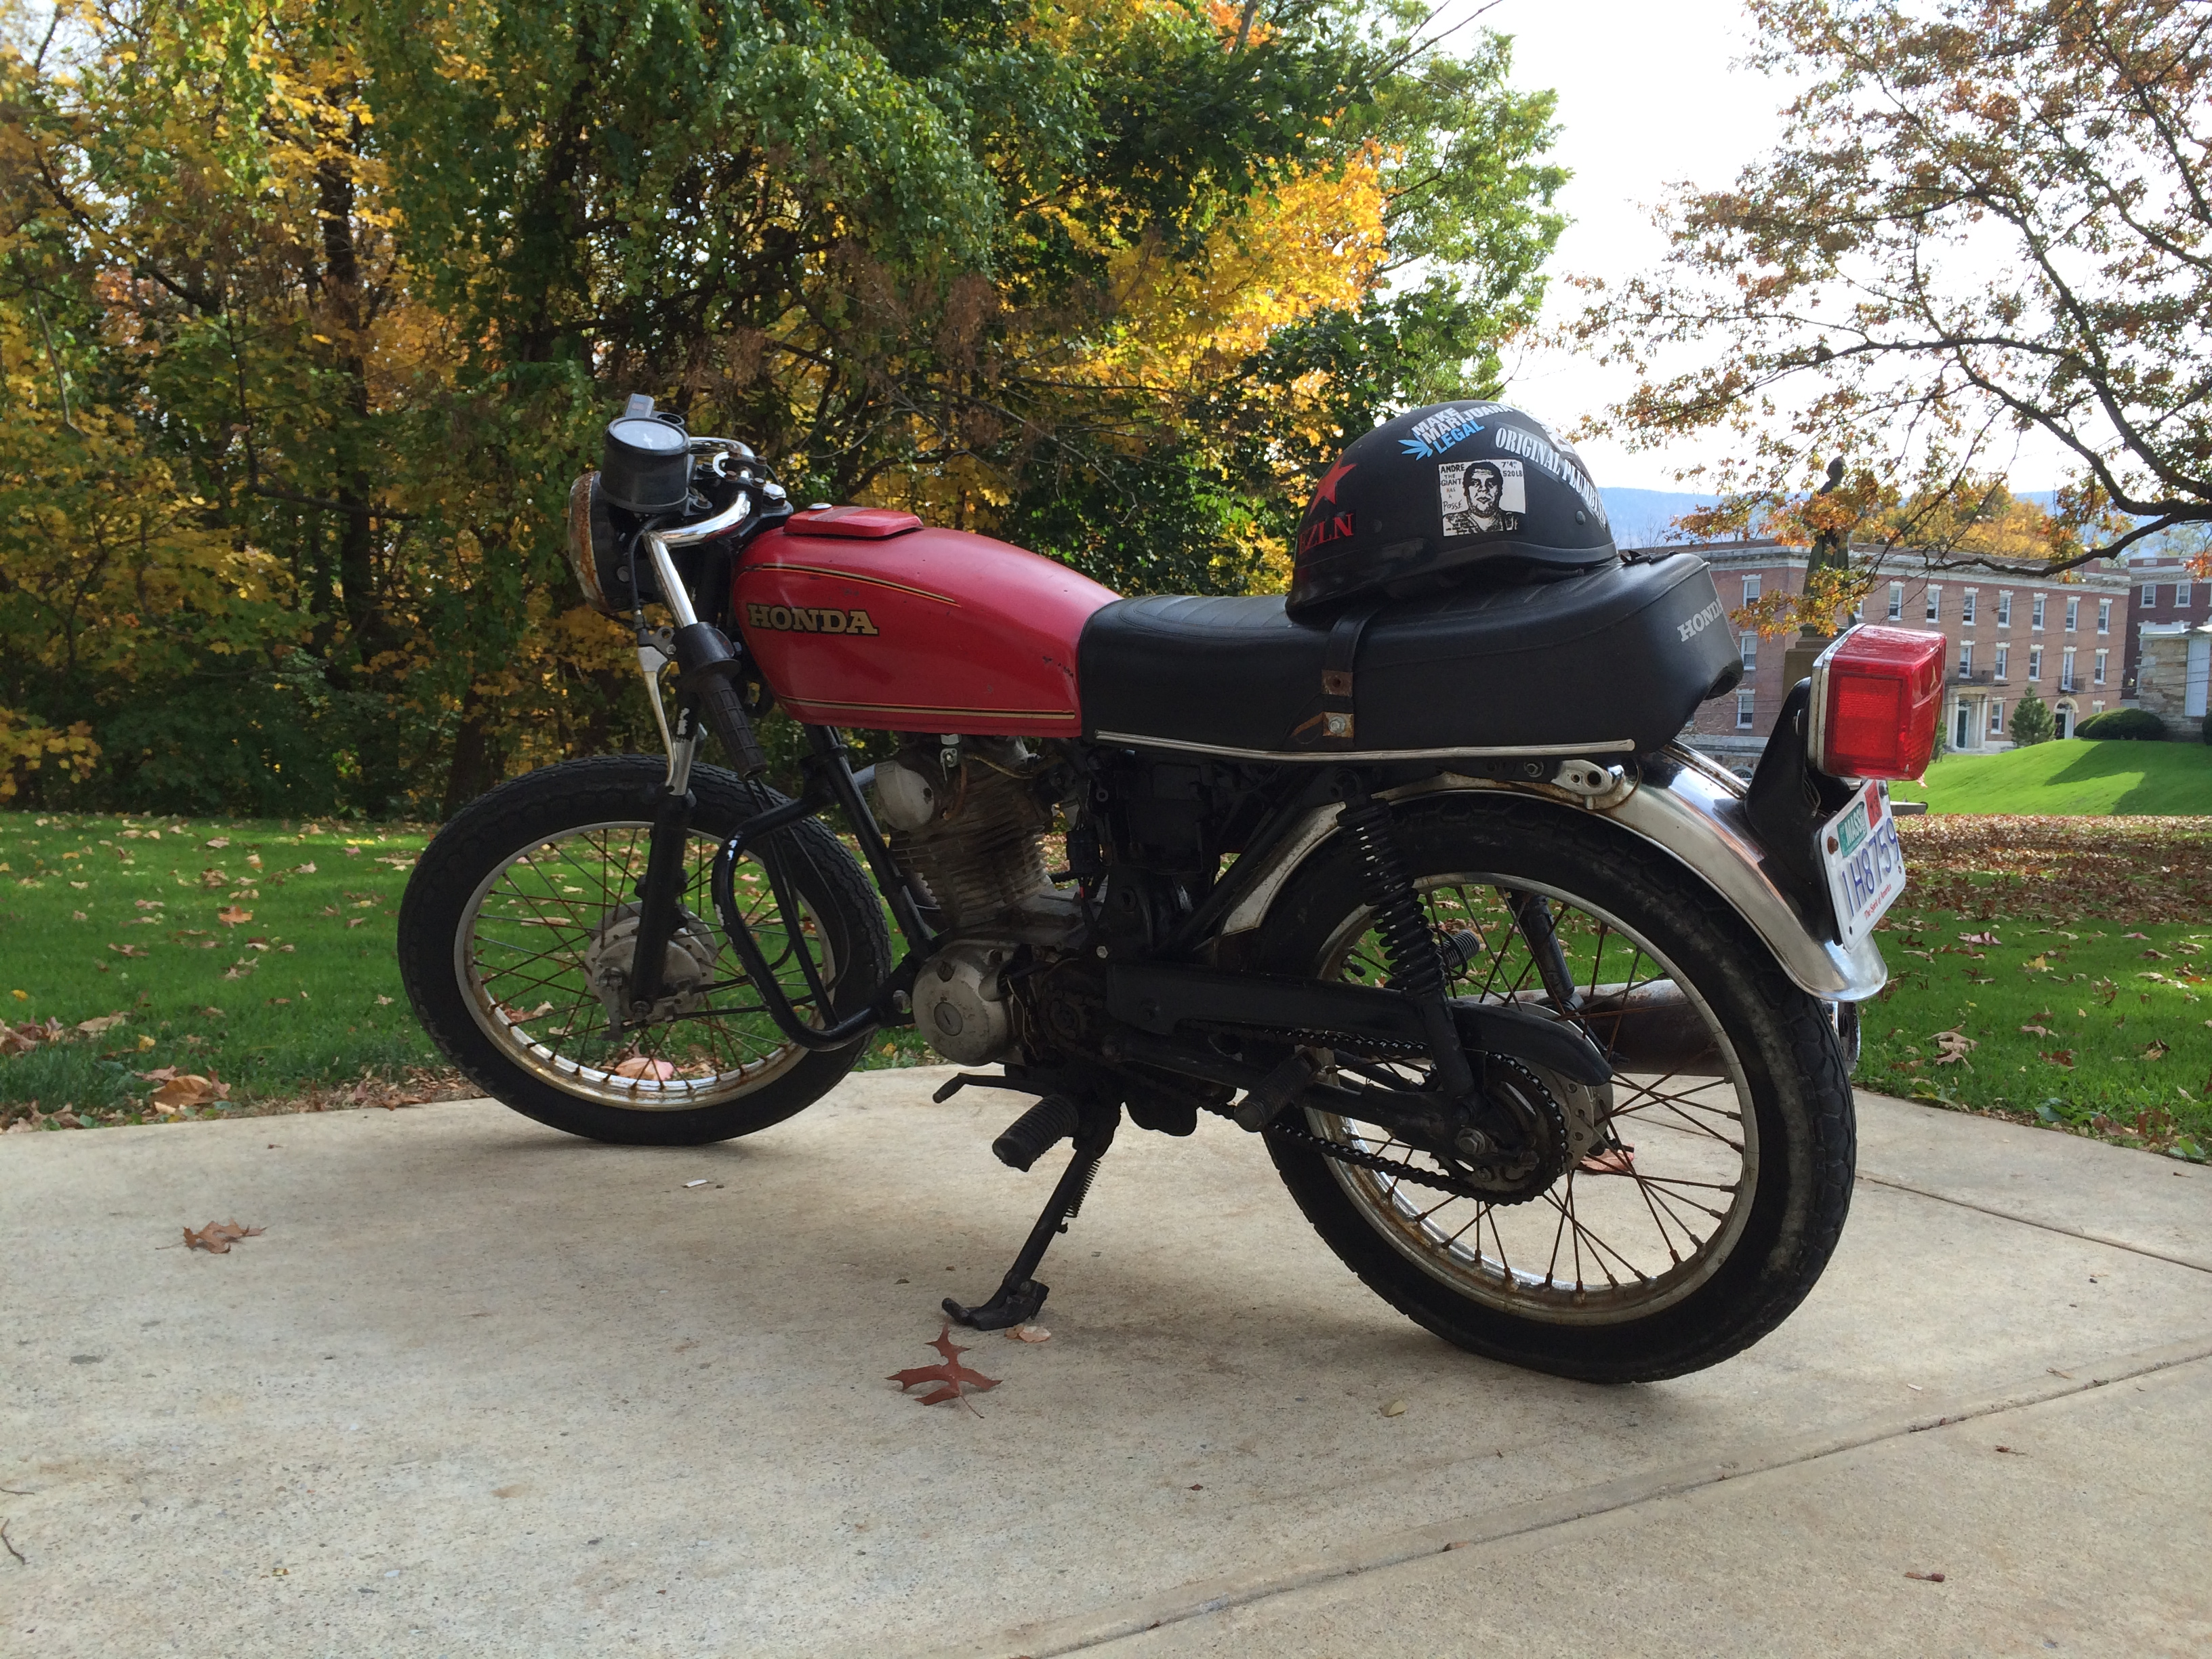 honda motorcycle wiring diagram xl100 plete 1972 vw beetle engine cb125s harness library everyone has a cb in their garage i do too runs well